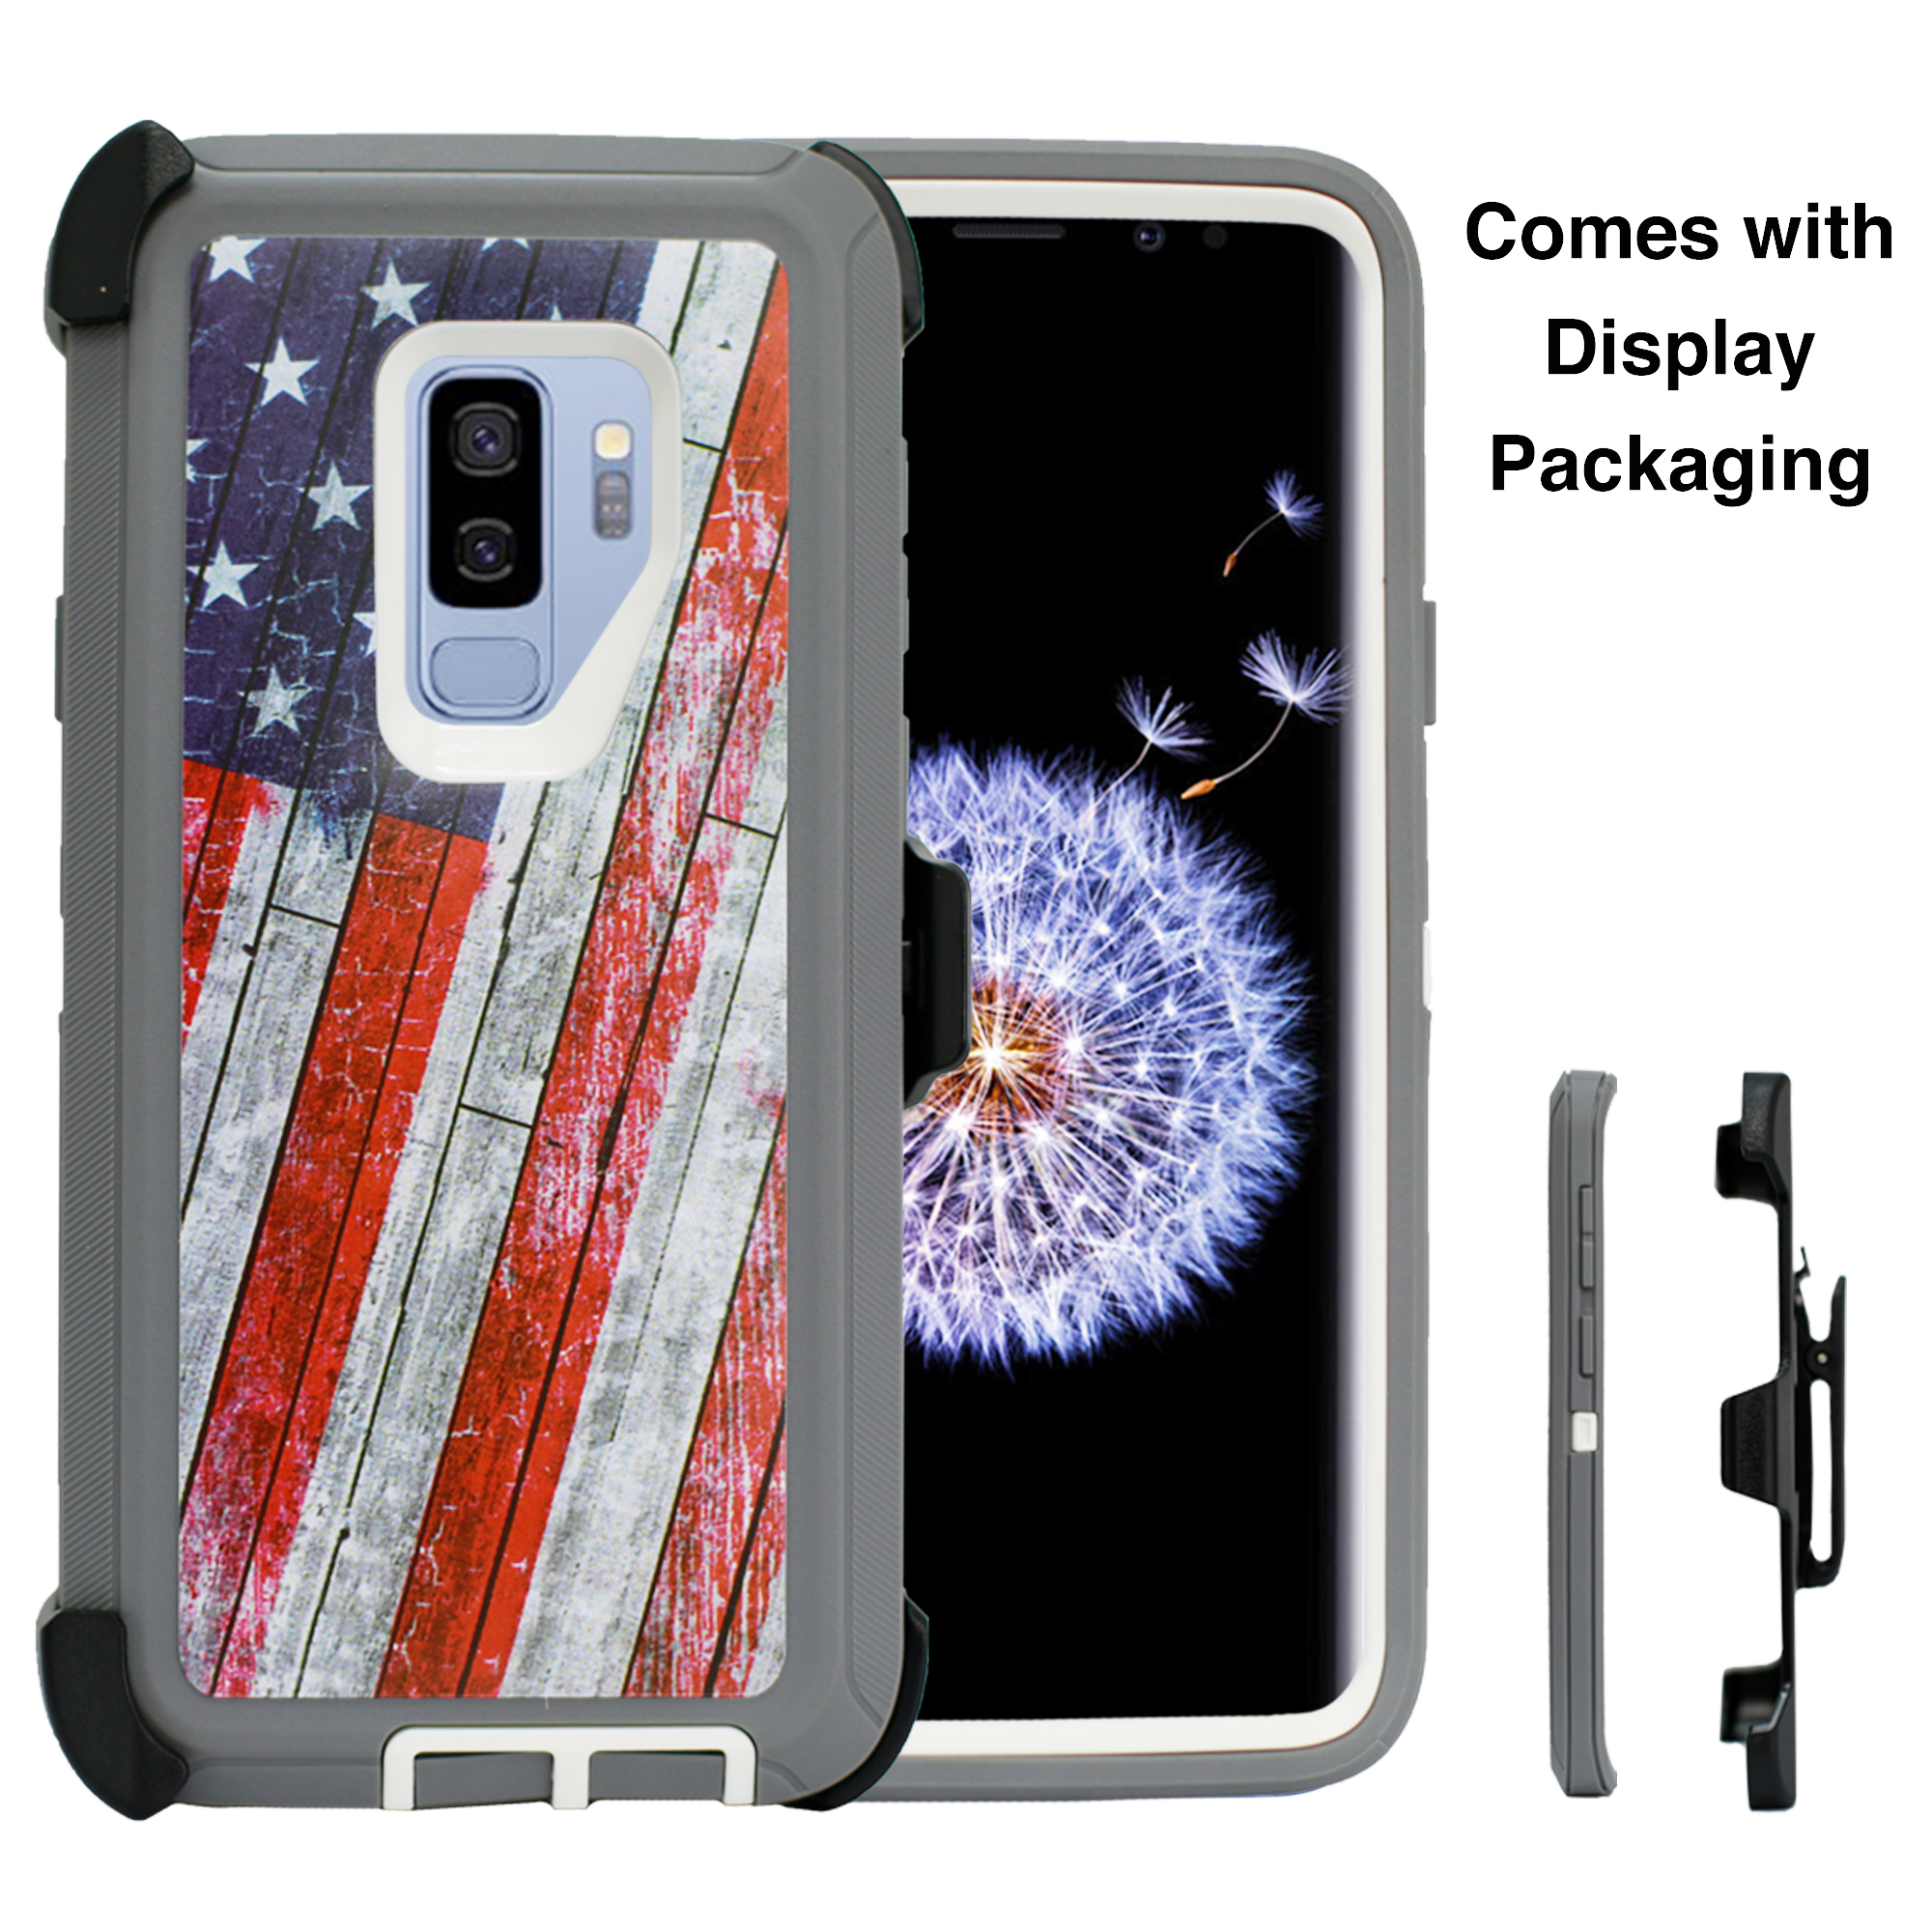 Design Heavy Duty Shock Reduction Case with Belt Clip (No Screen) for Galaxy S9 Plus - Black (Bgrass)